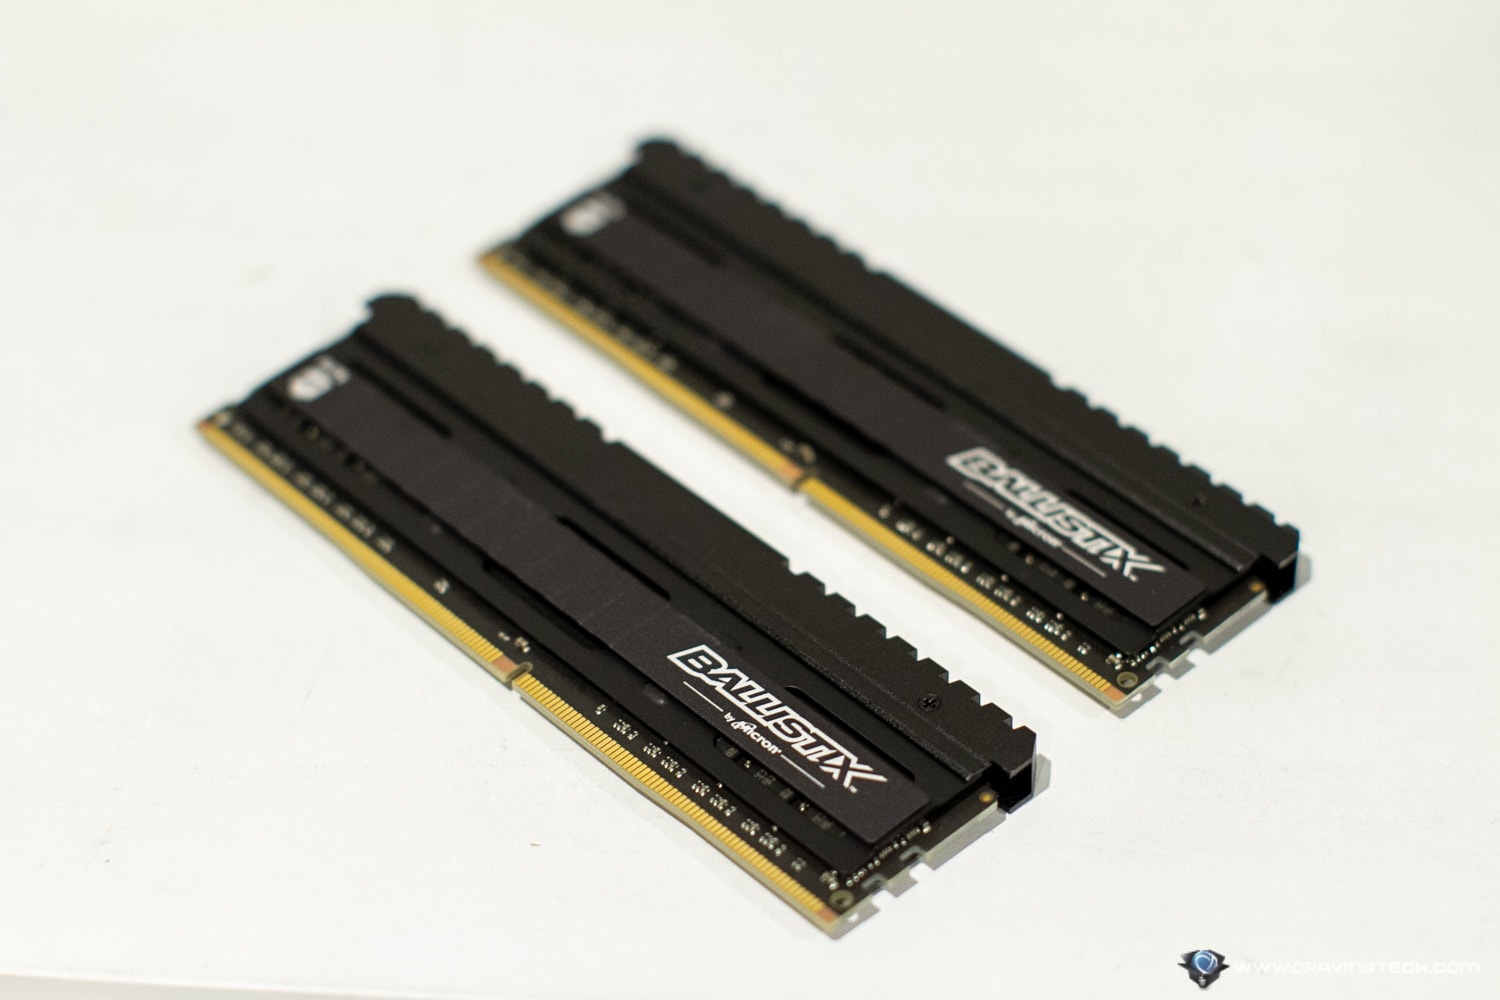 Crucial Ballistix Elite DDR4 PC3600 2x8GB kit